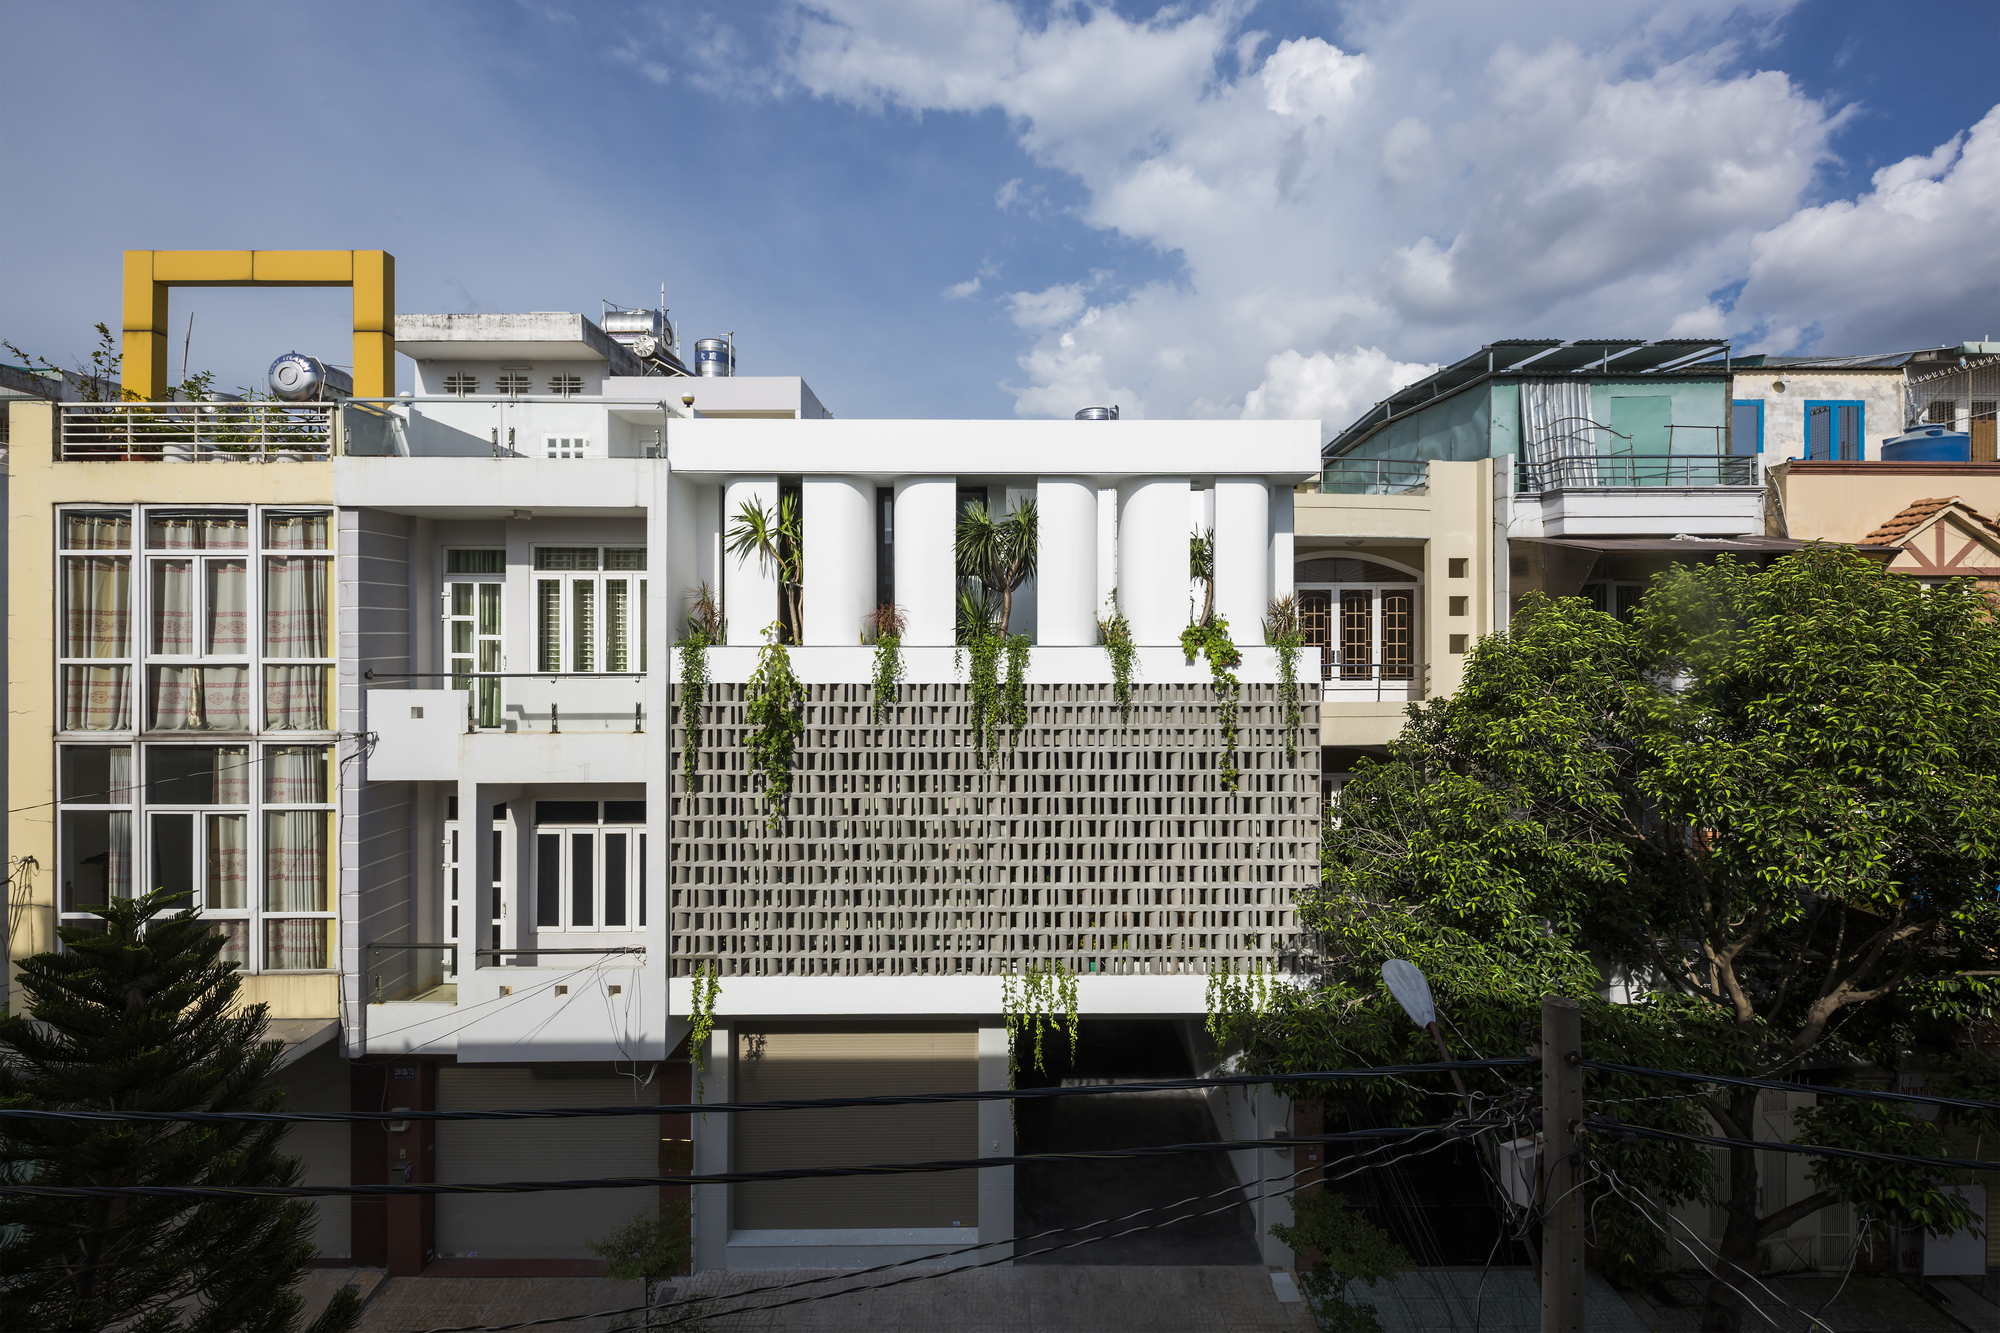 House for a Daughter / Khuon Studio